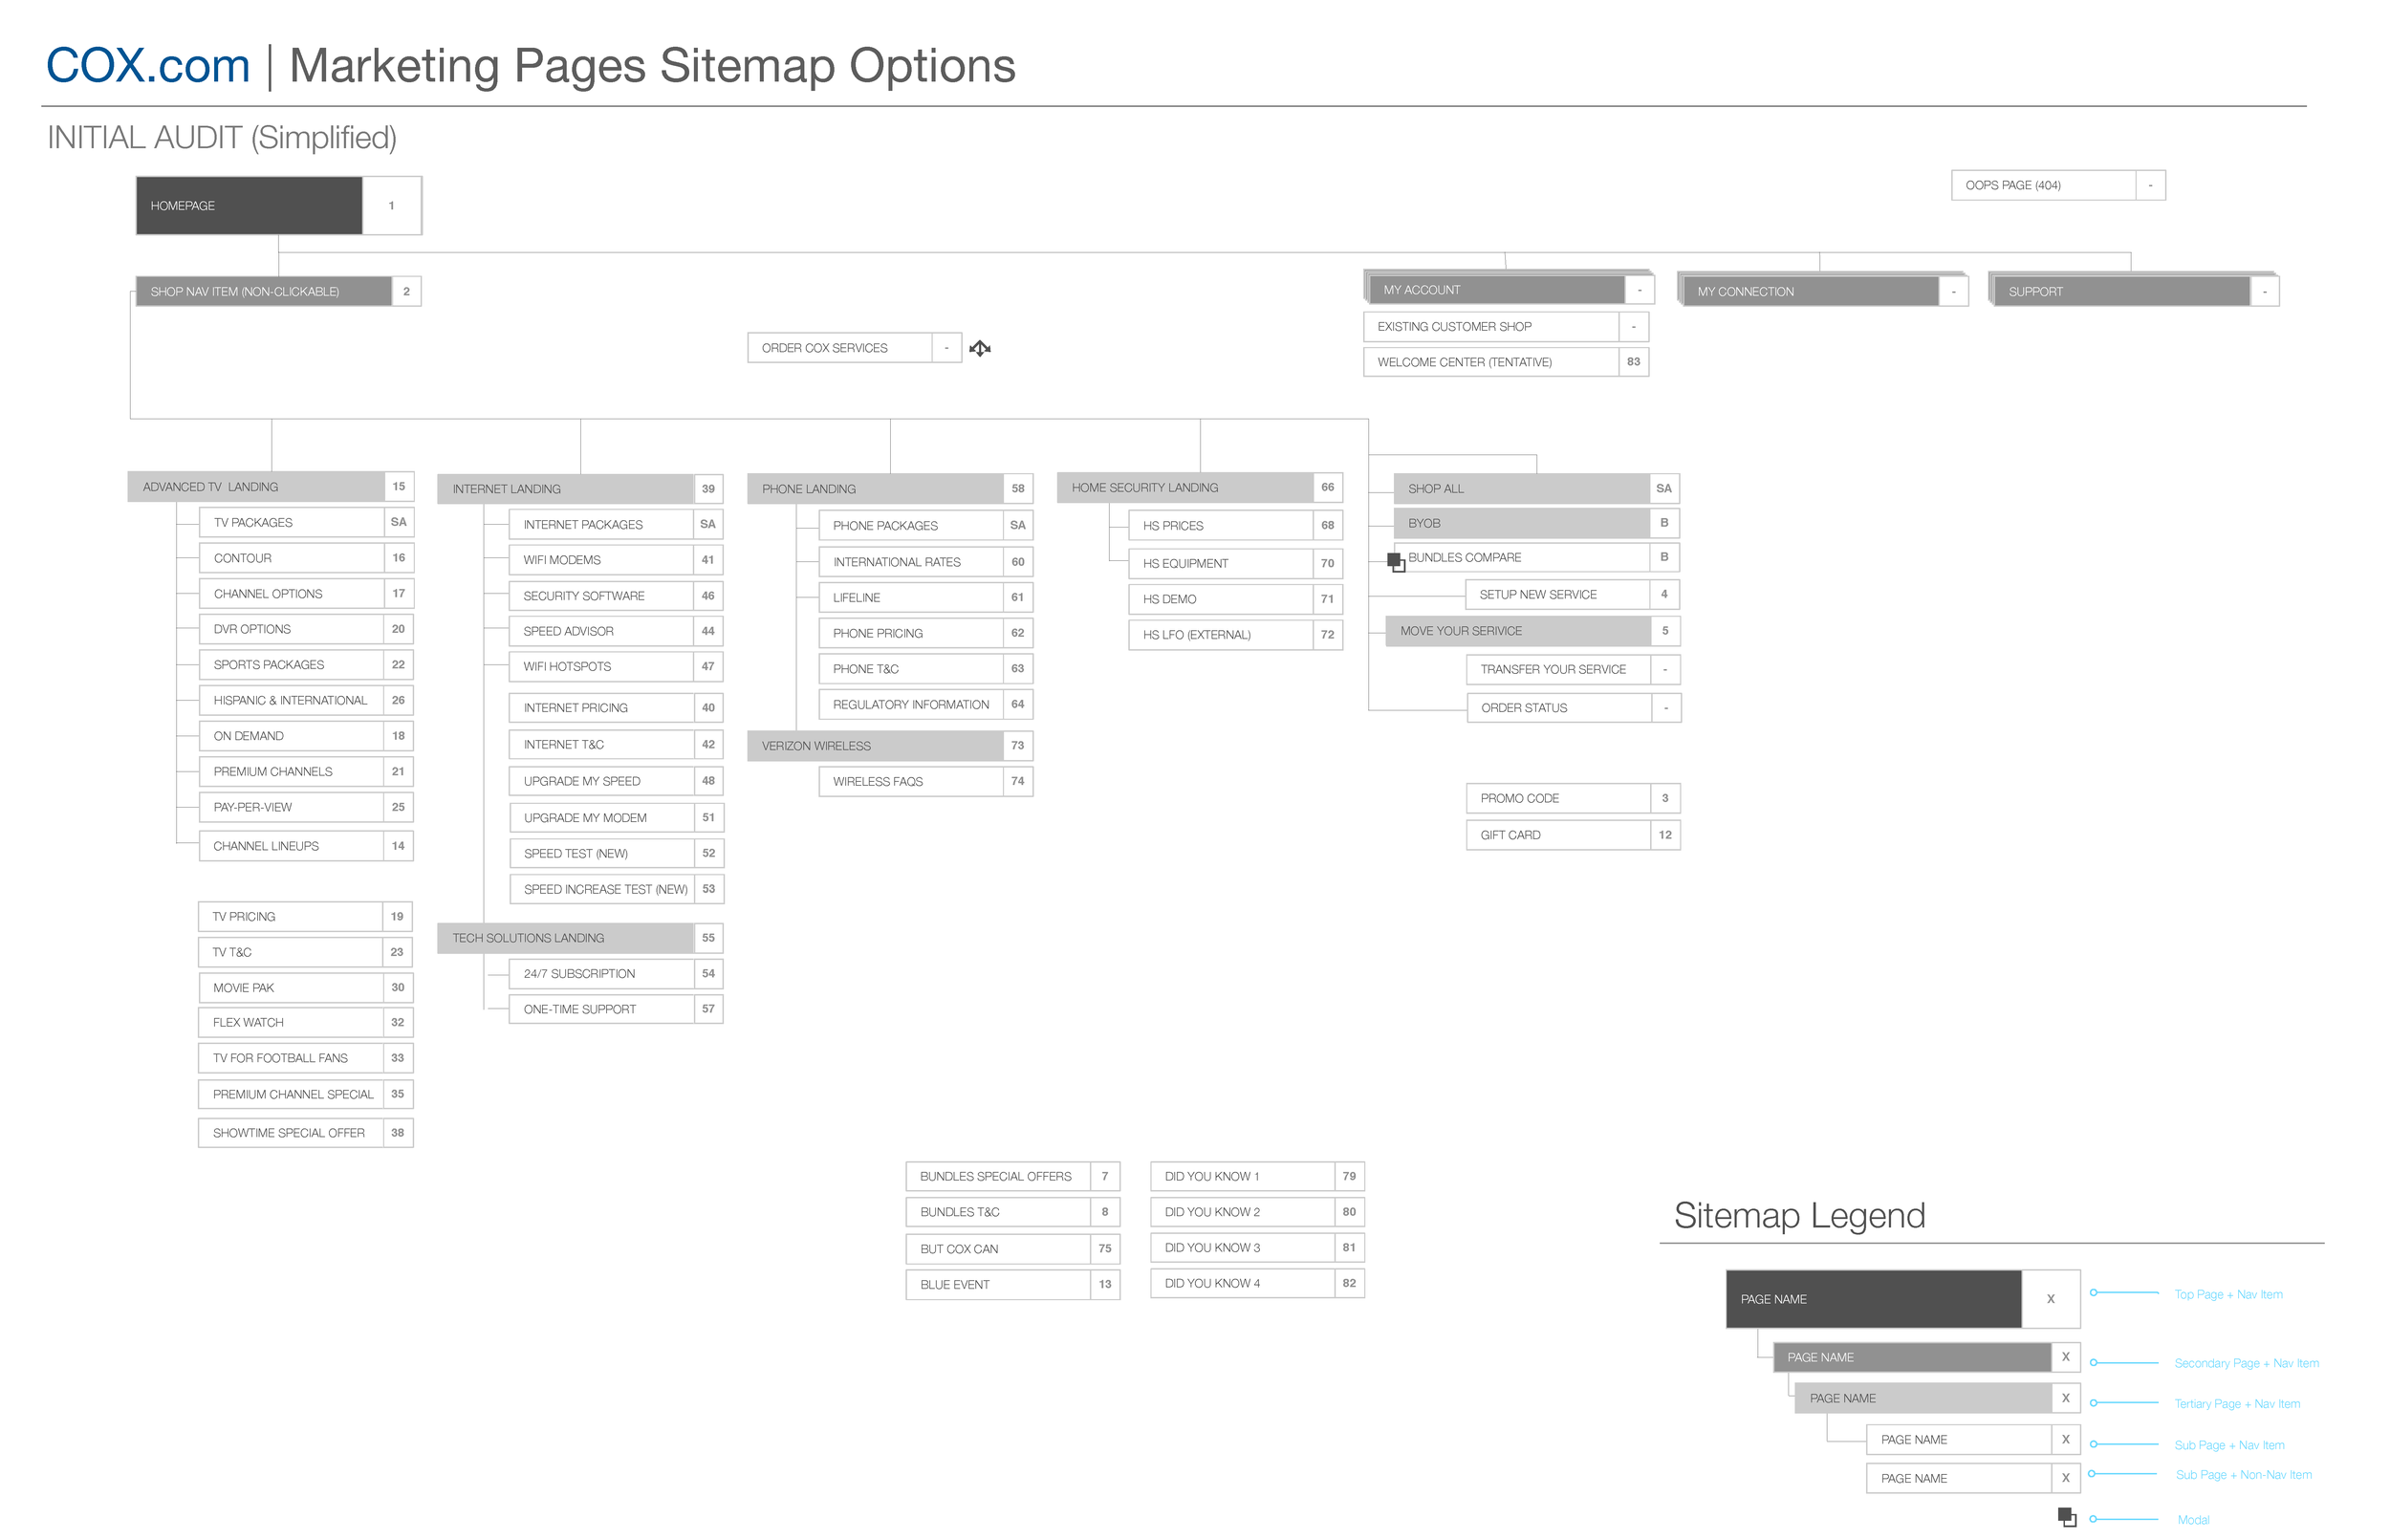 COX_Marketing_Sitemap_V1_Page_3.png